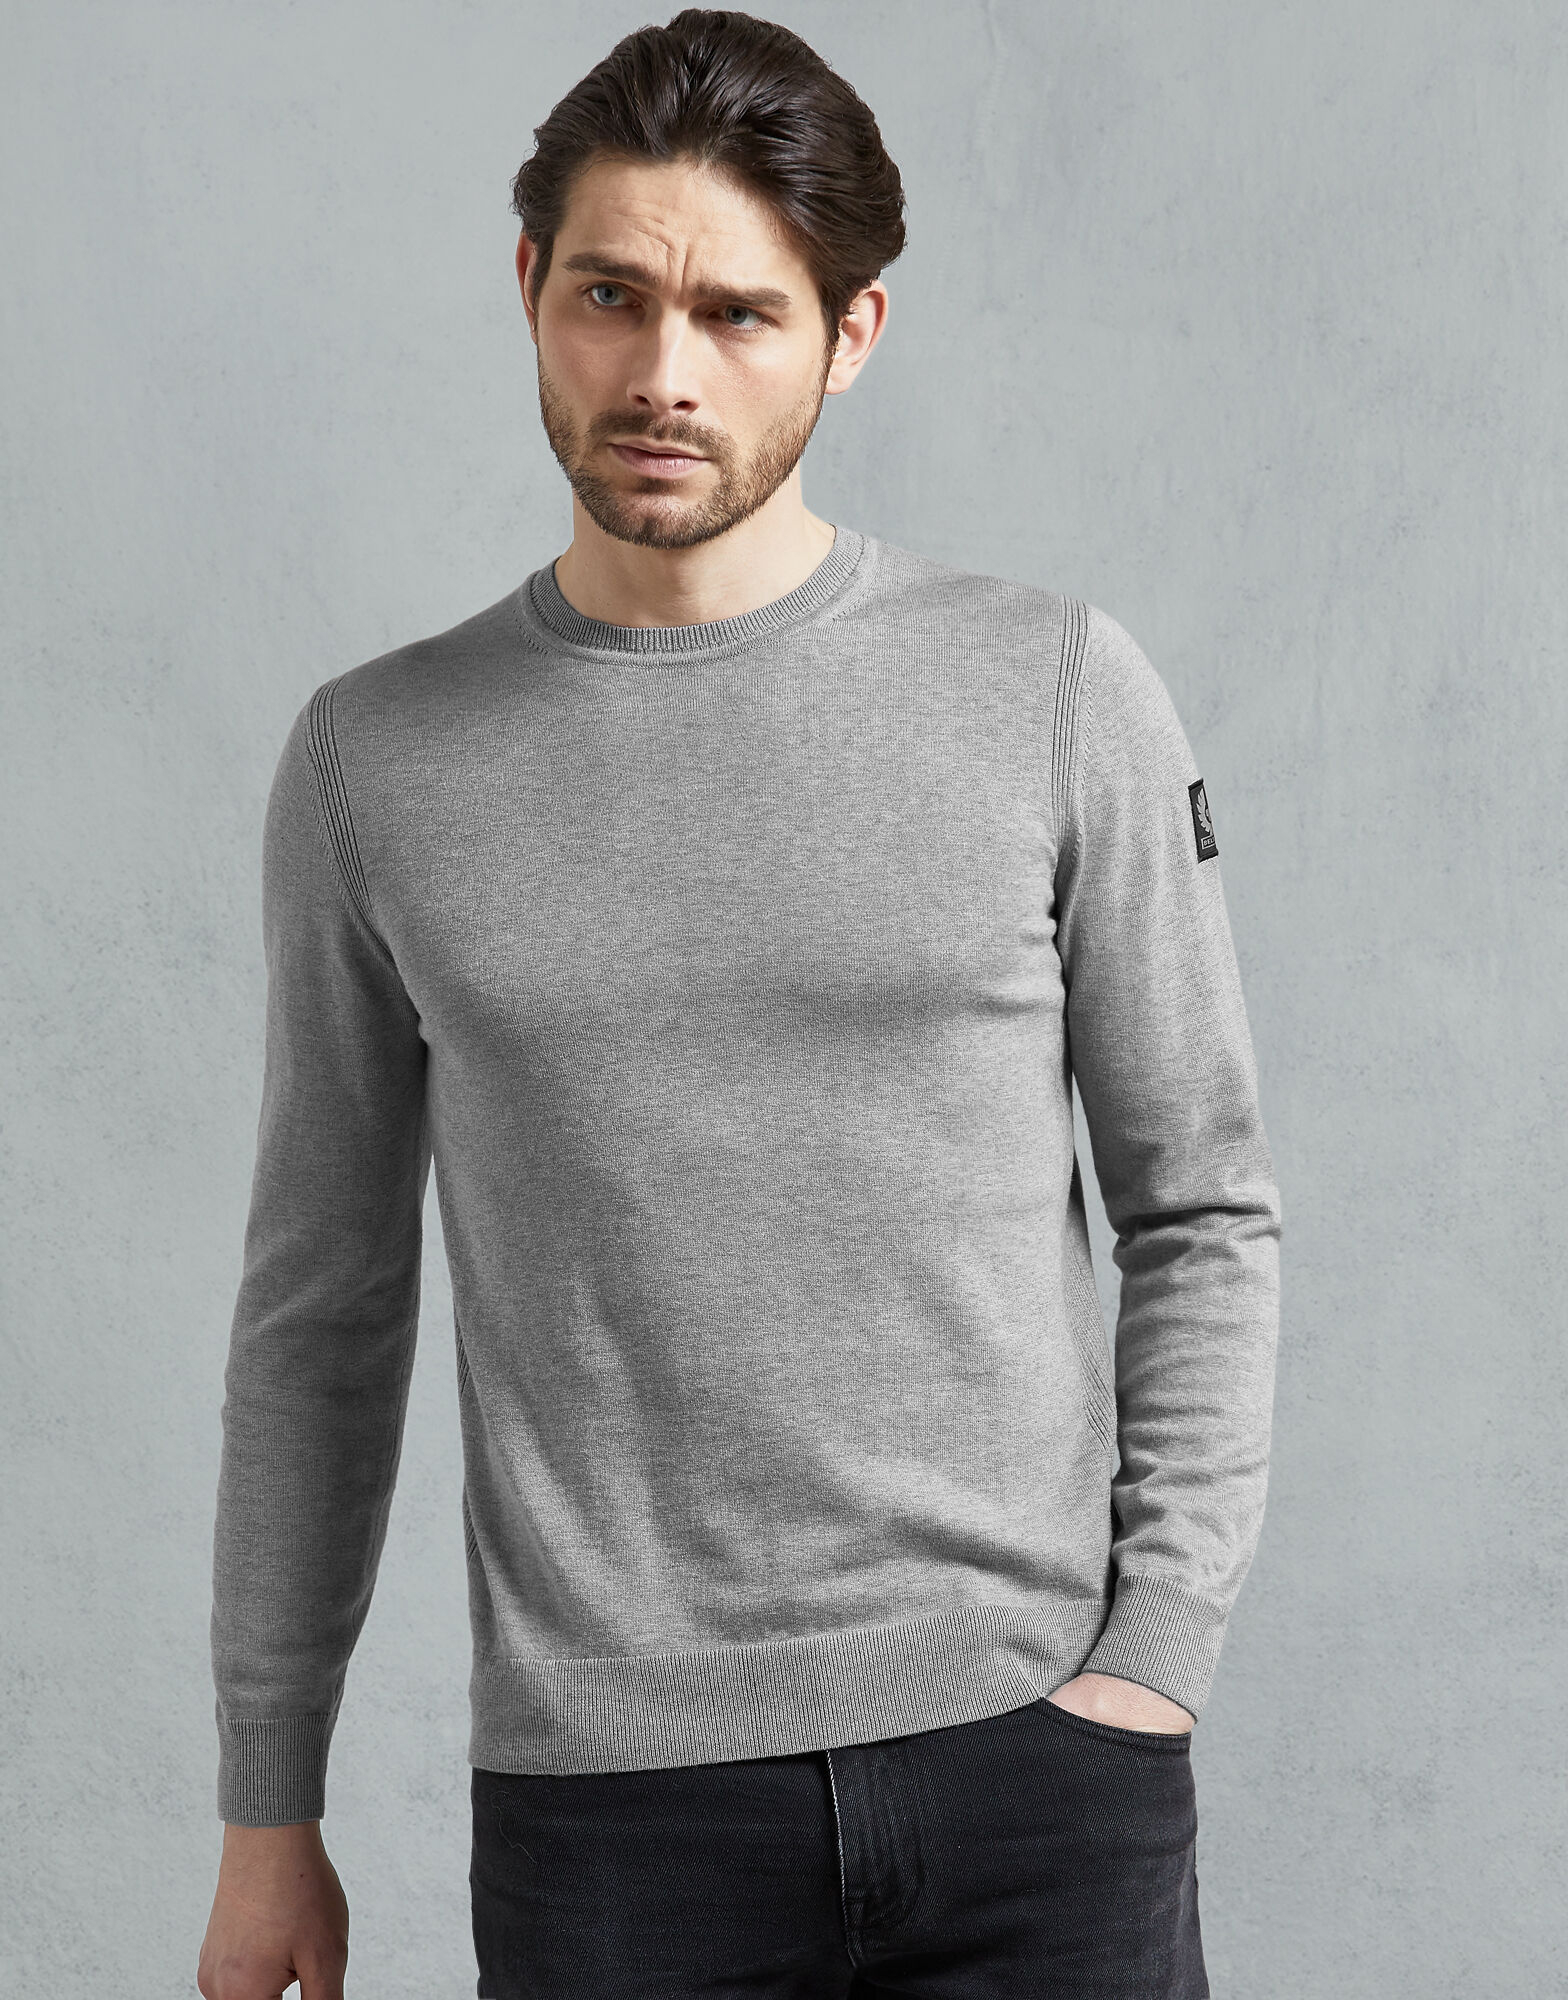 Free Knitting Patterns For Men's Sweaters Mens Sweaters Mens Cardigans Zip Tops Knitwear For Men